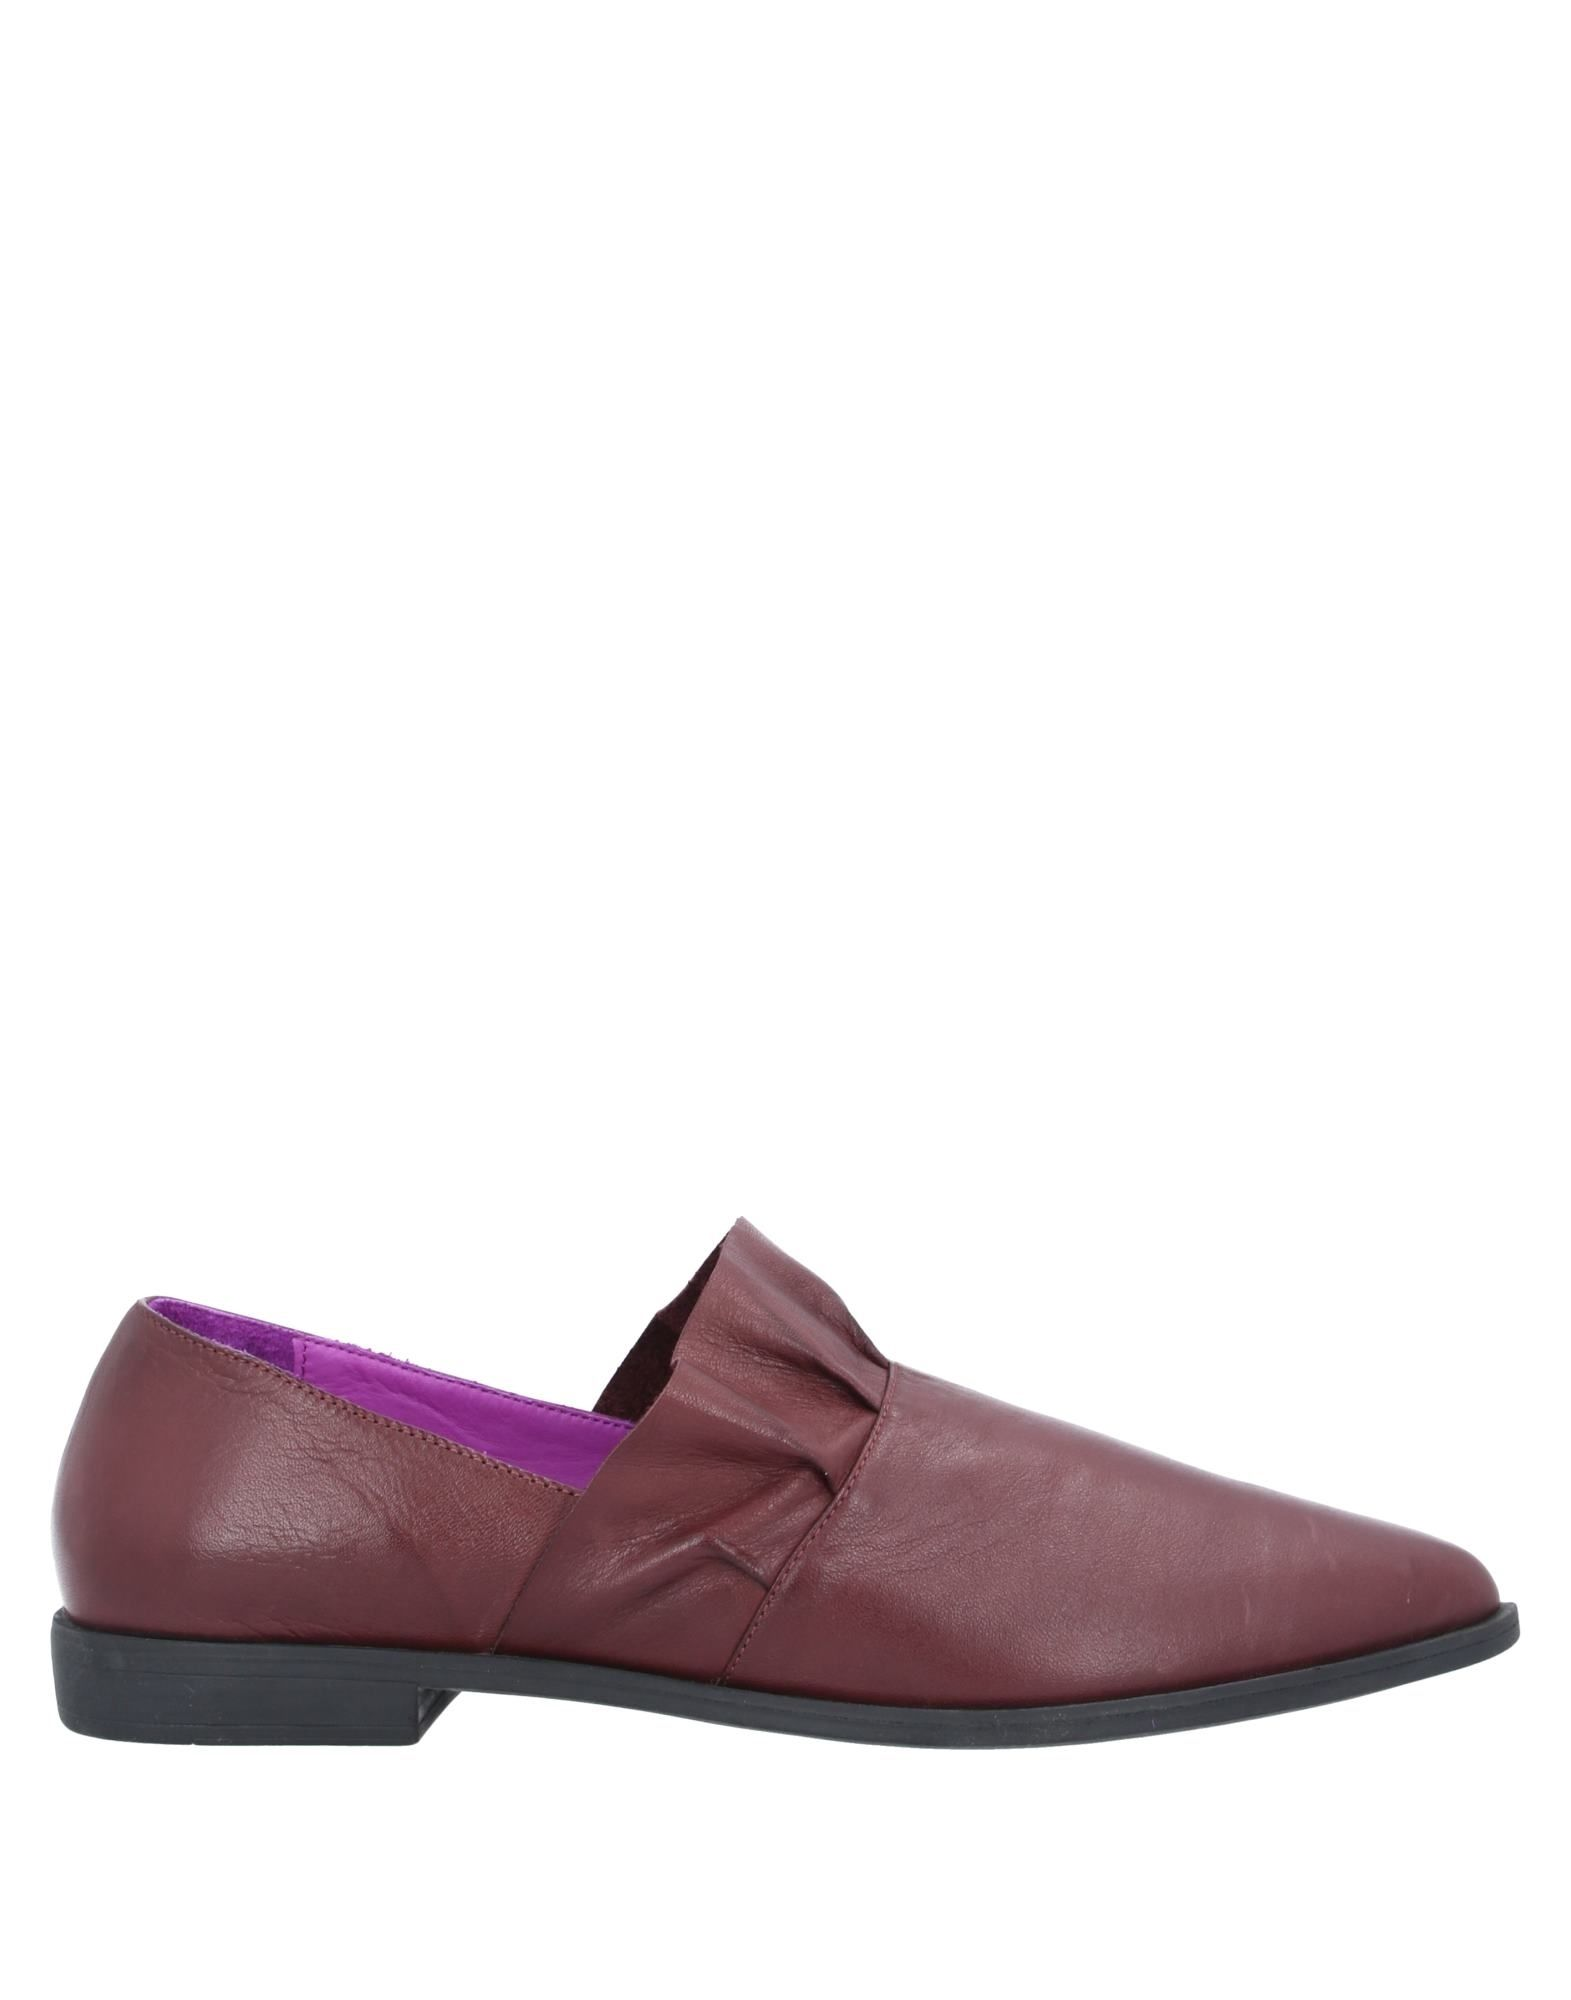 BUENO Loafers. no appliqués, solid color, round toeline, flat, leather lining, rubber sole, contains non-textile parts of animal origin. Soft Leather